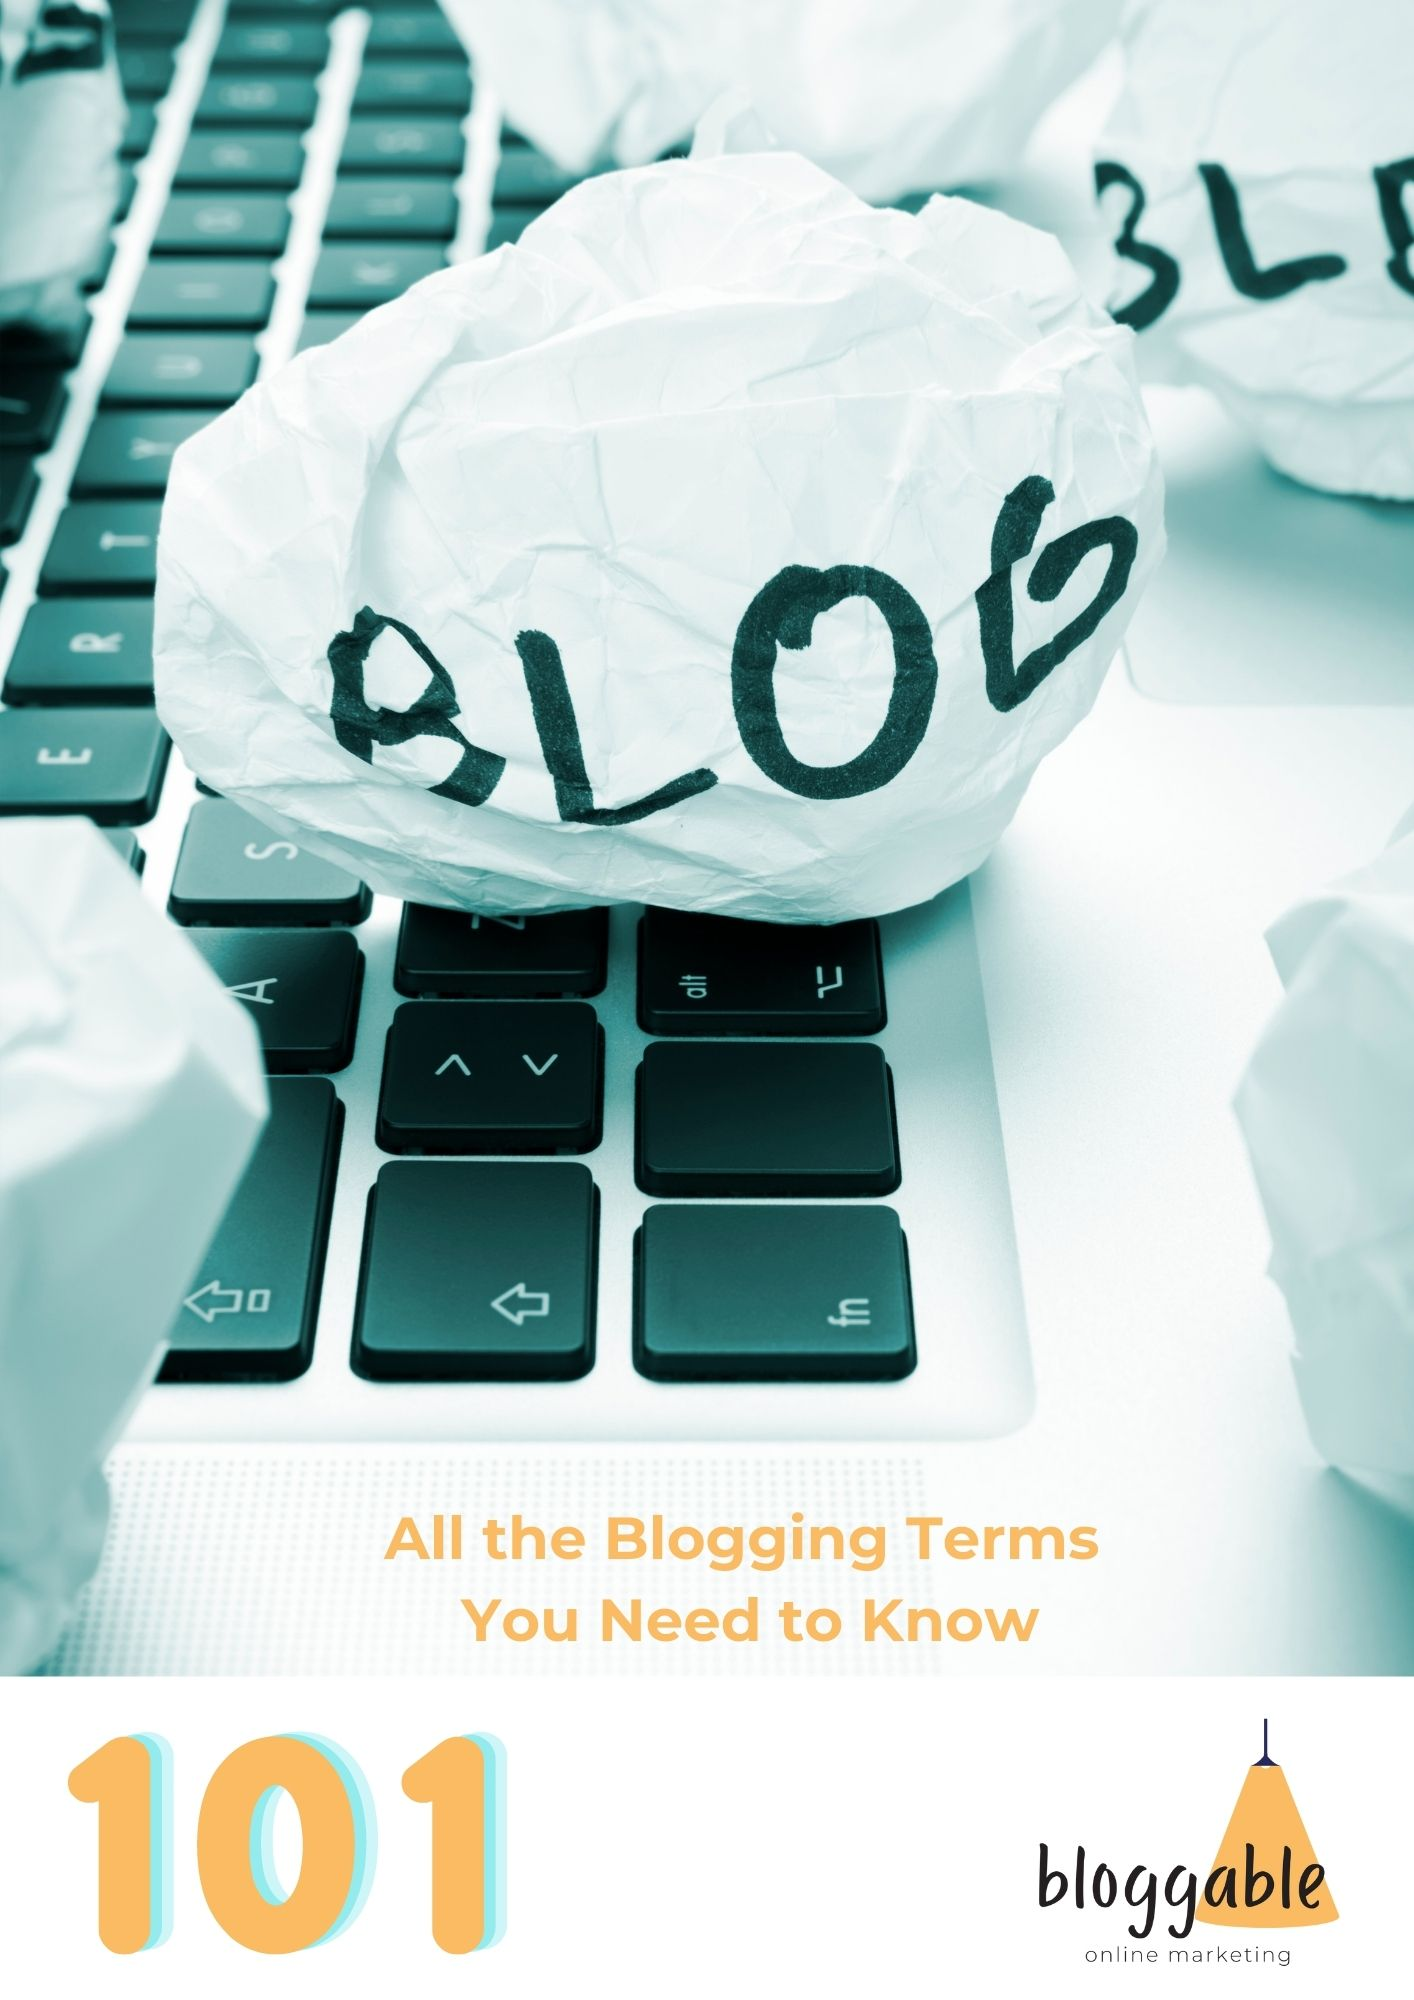 Blogging 101 All the blogging terms you need to know